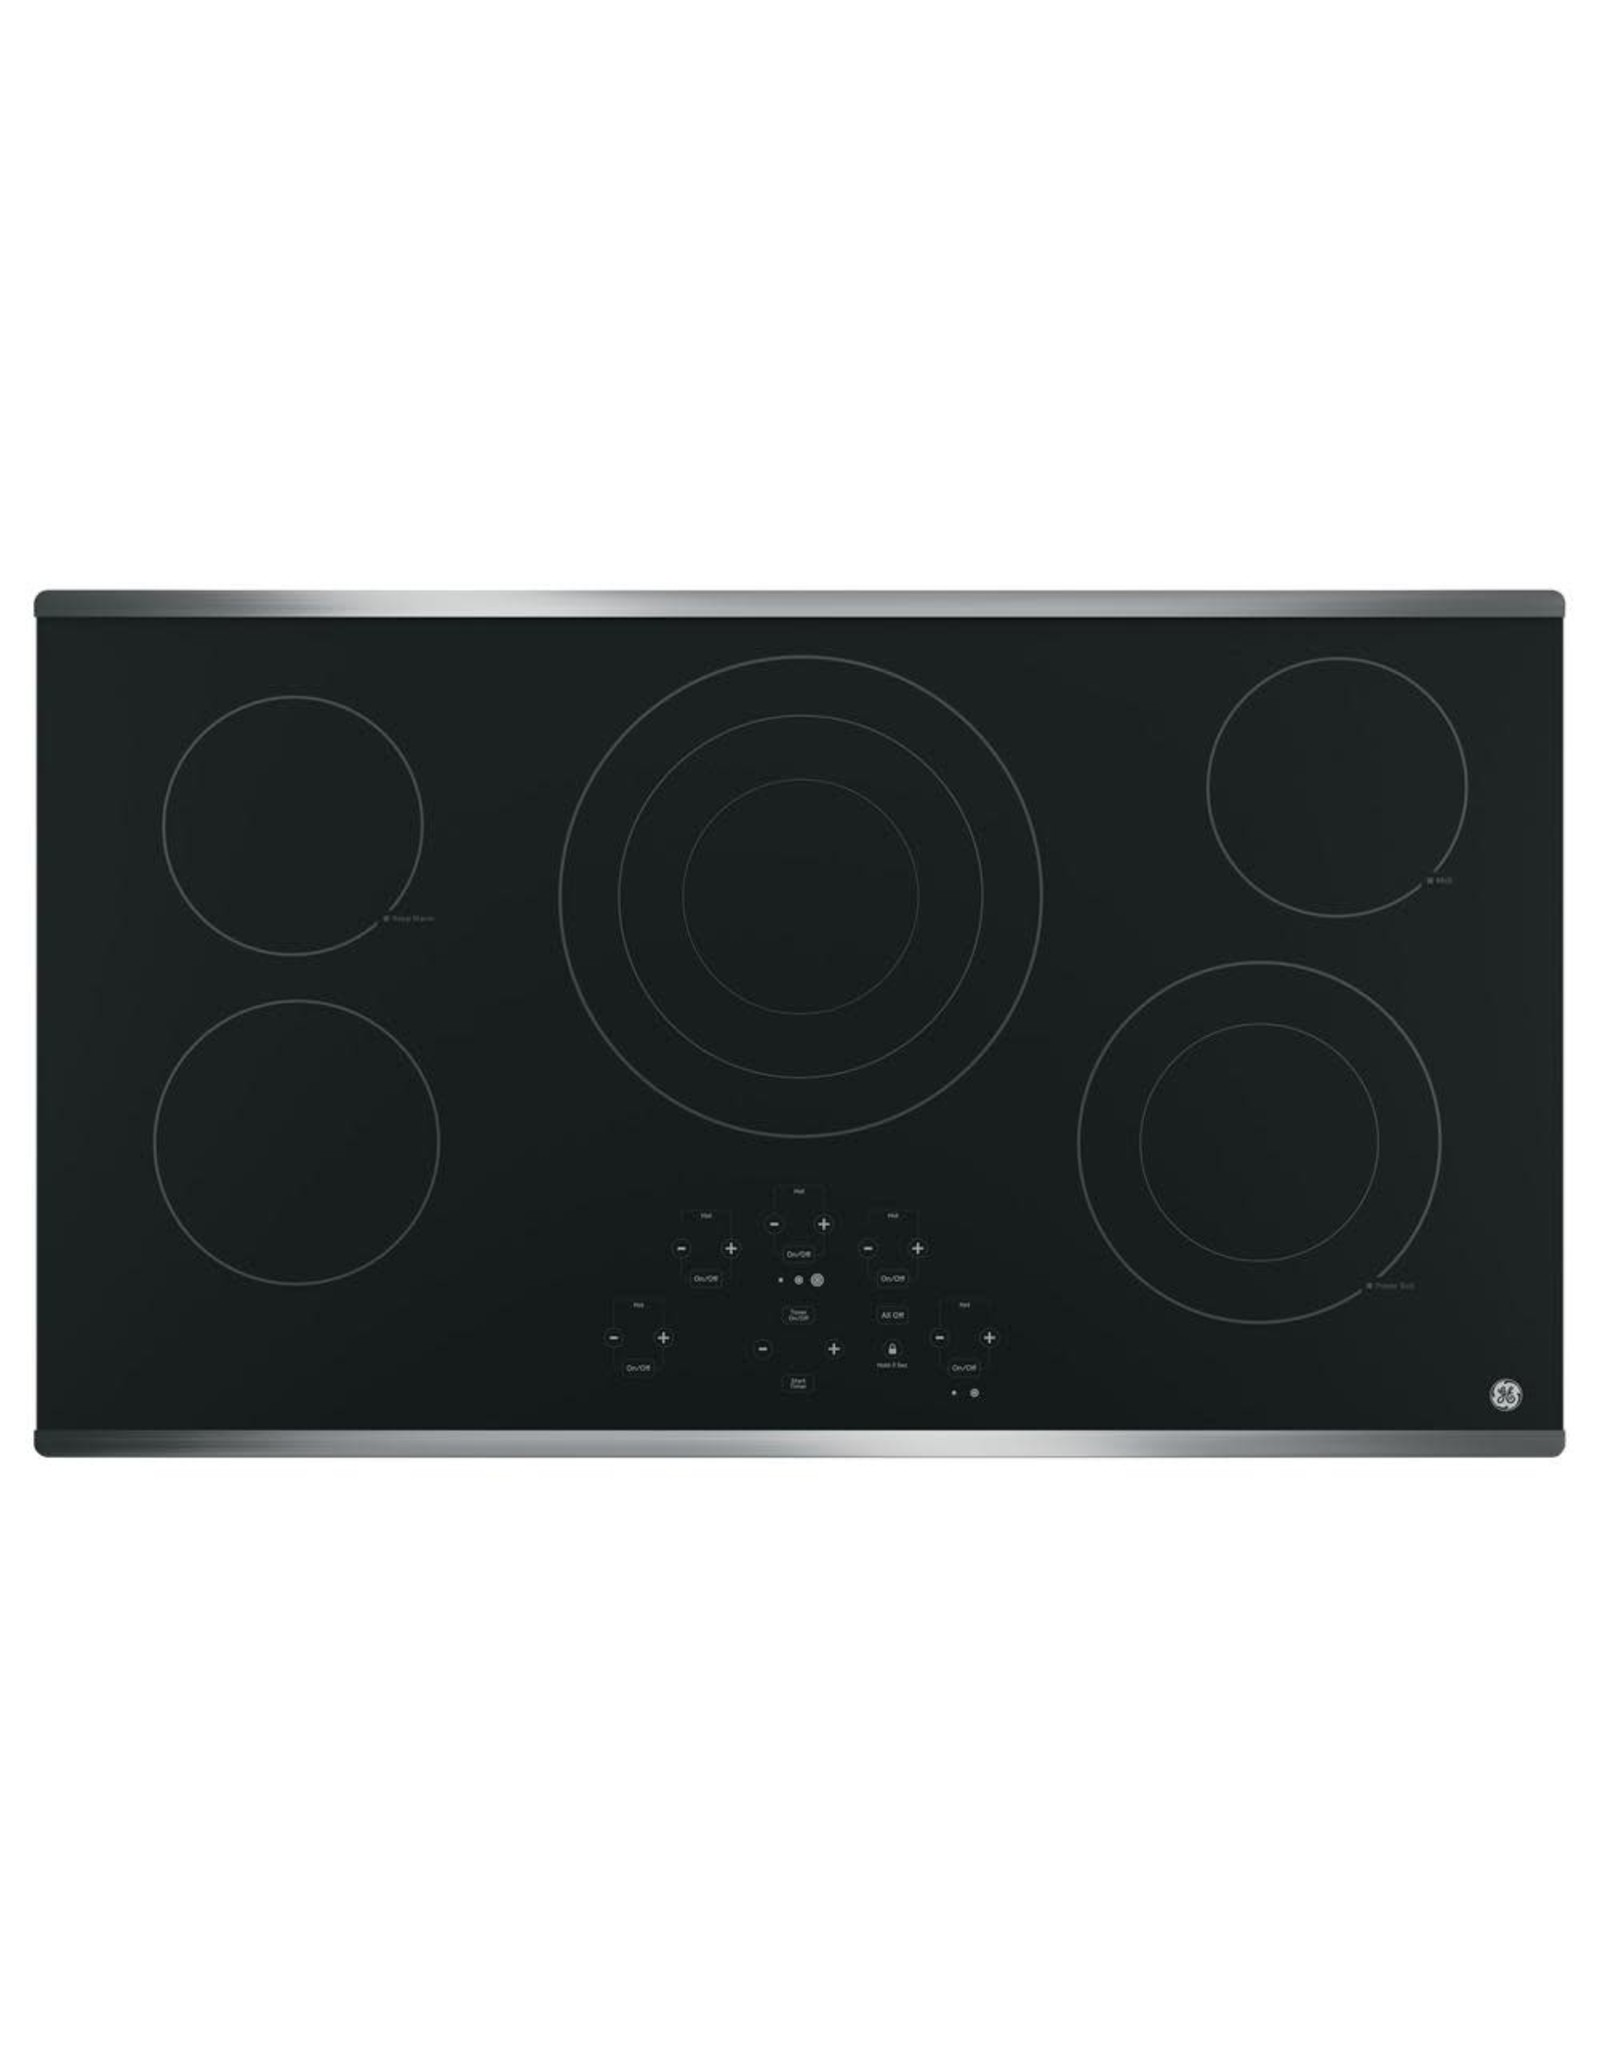 GE JP5036SJSS 36 in. Radiant Electric Cooktop in Stainless Steel with 5 Elements including Power Boil